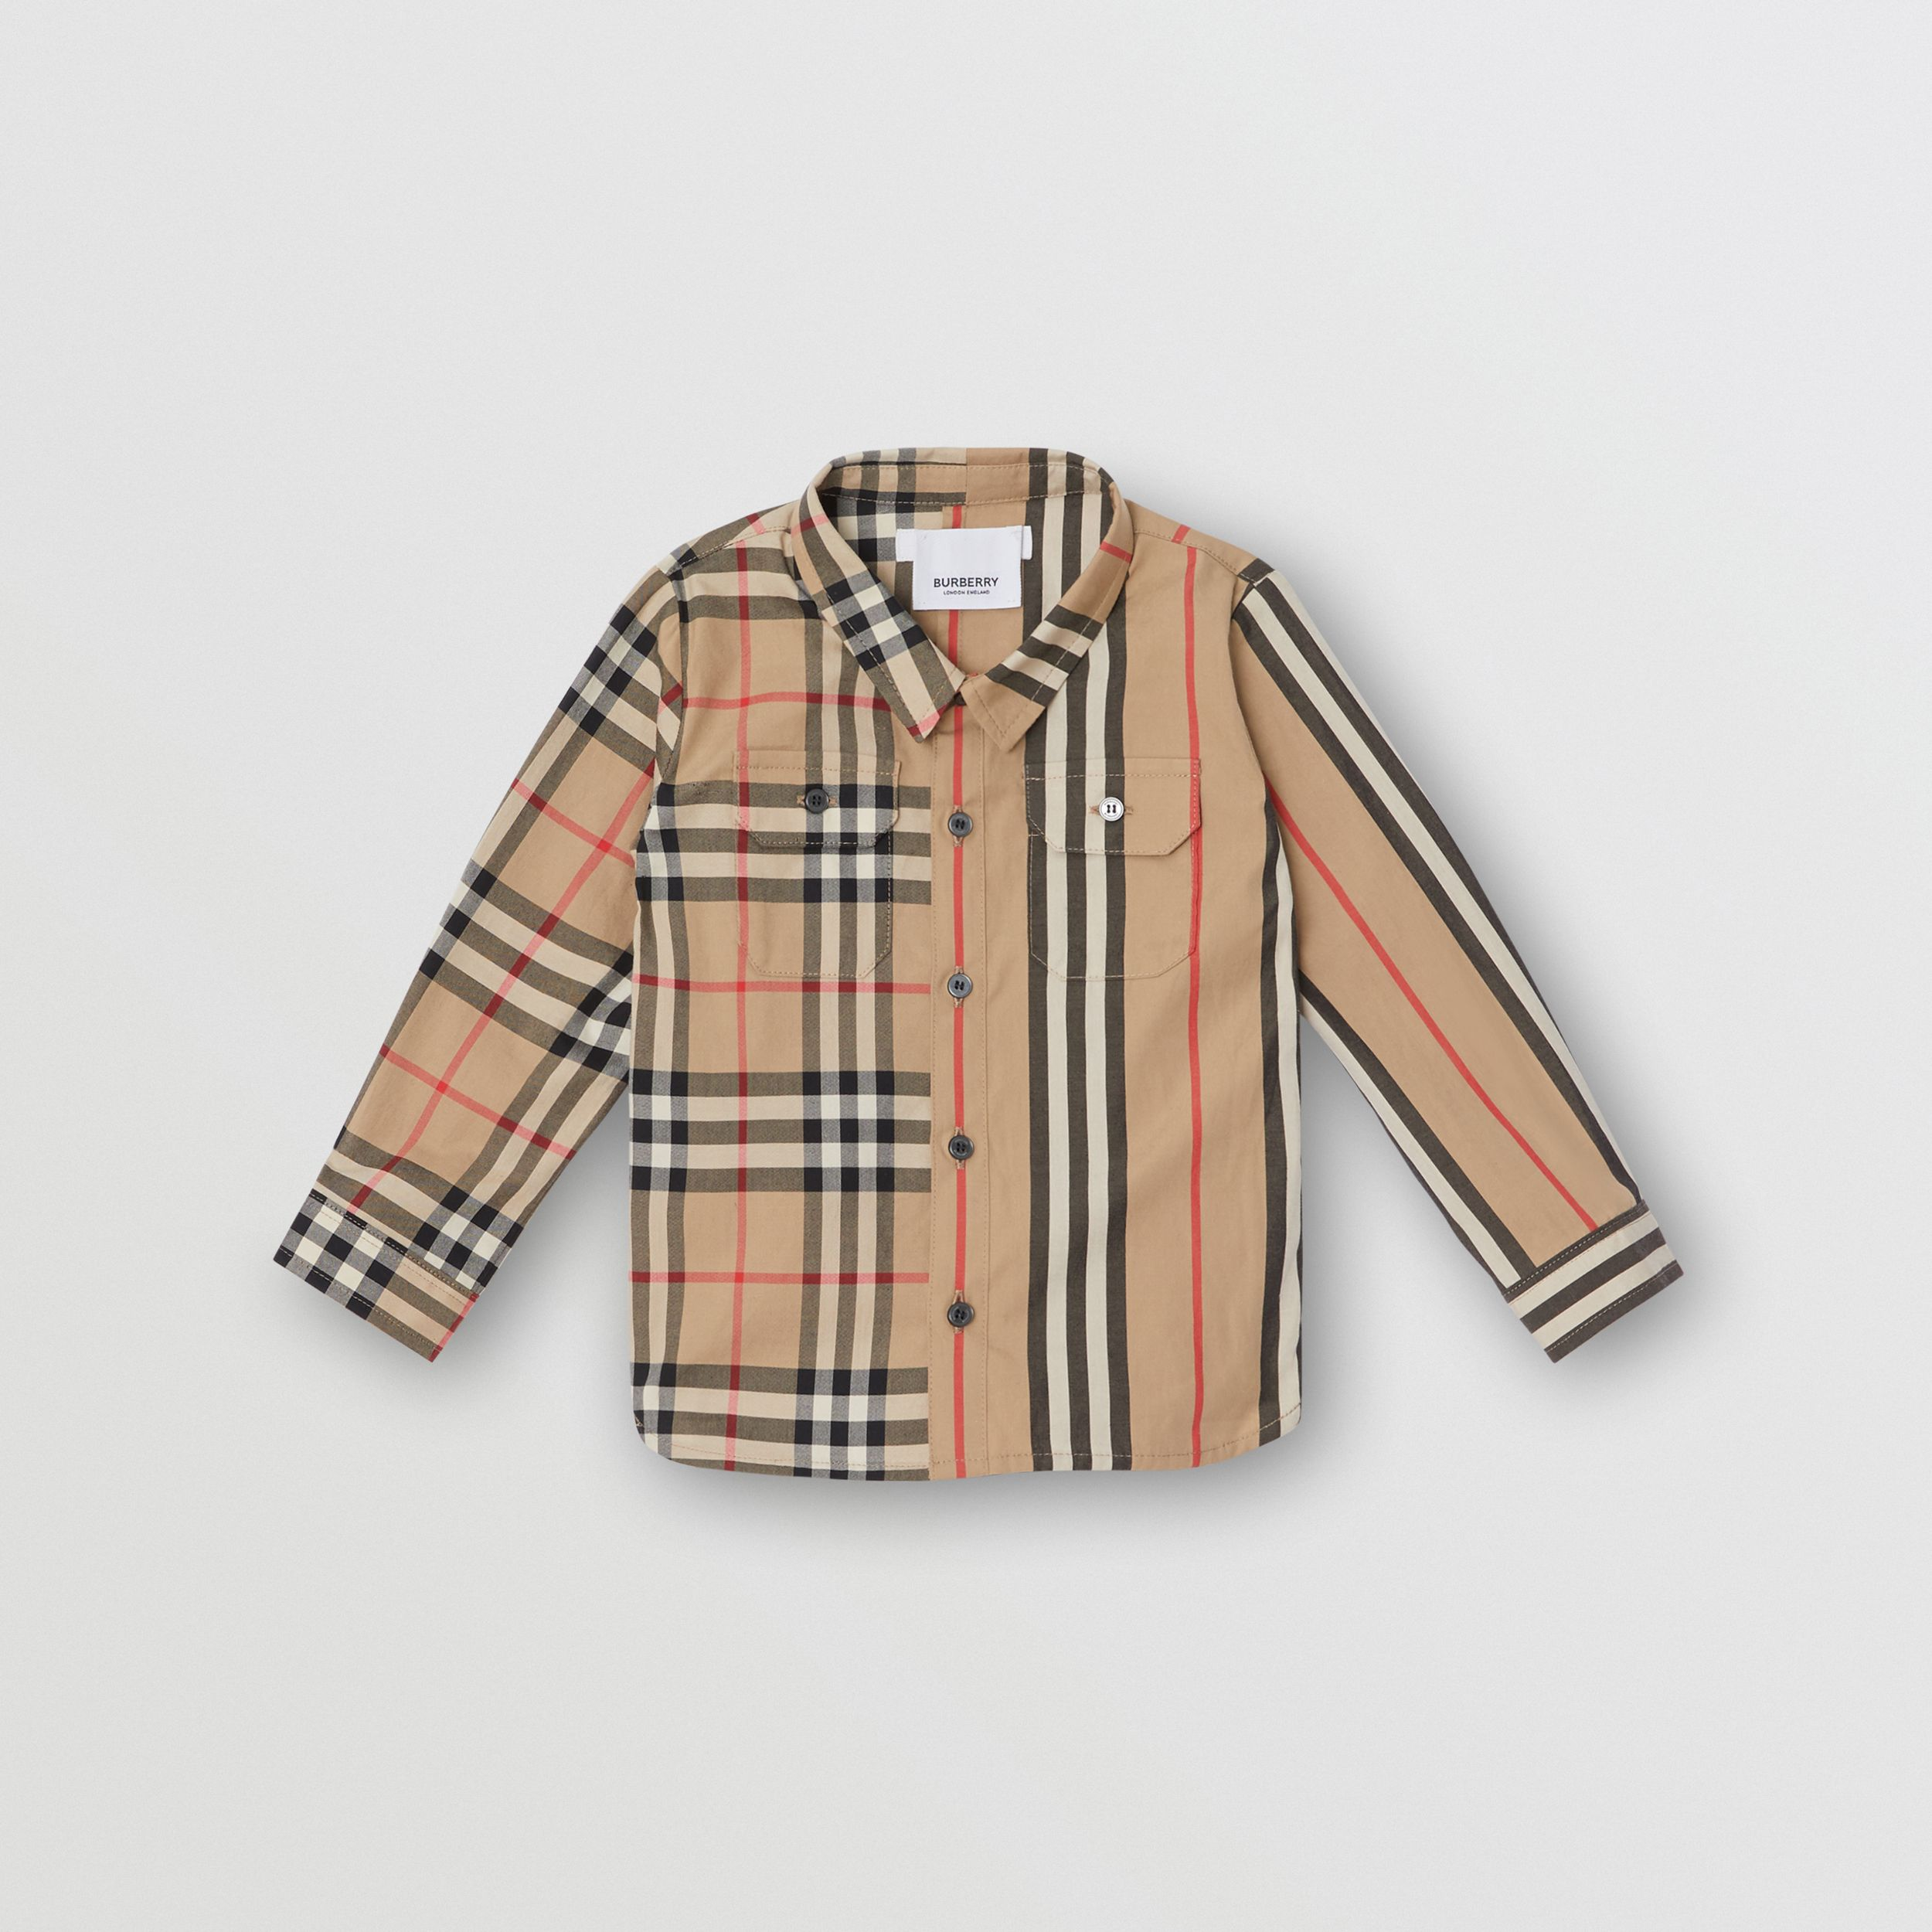 Panelled Vintage Check and Icon Stripe Cotton Shirt in Archive Beige - Children | Burberry United Kingdom - 1